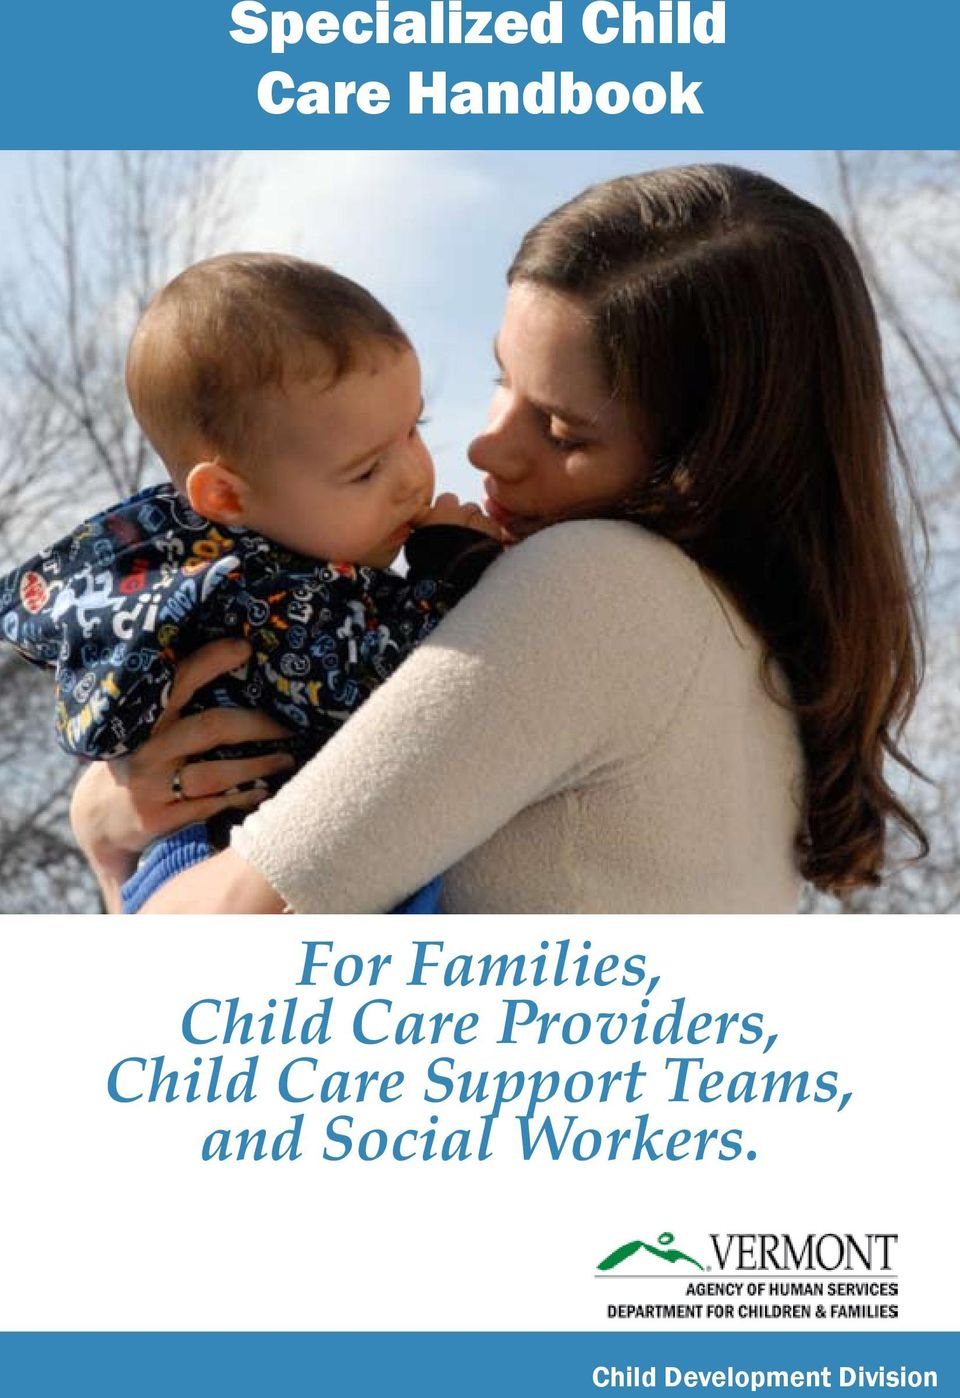 Providers, Child Care Support